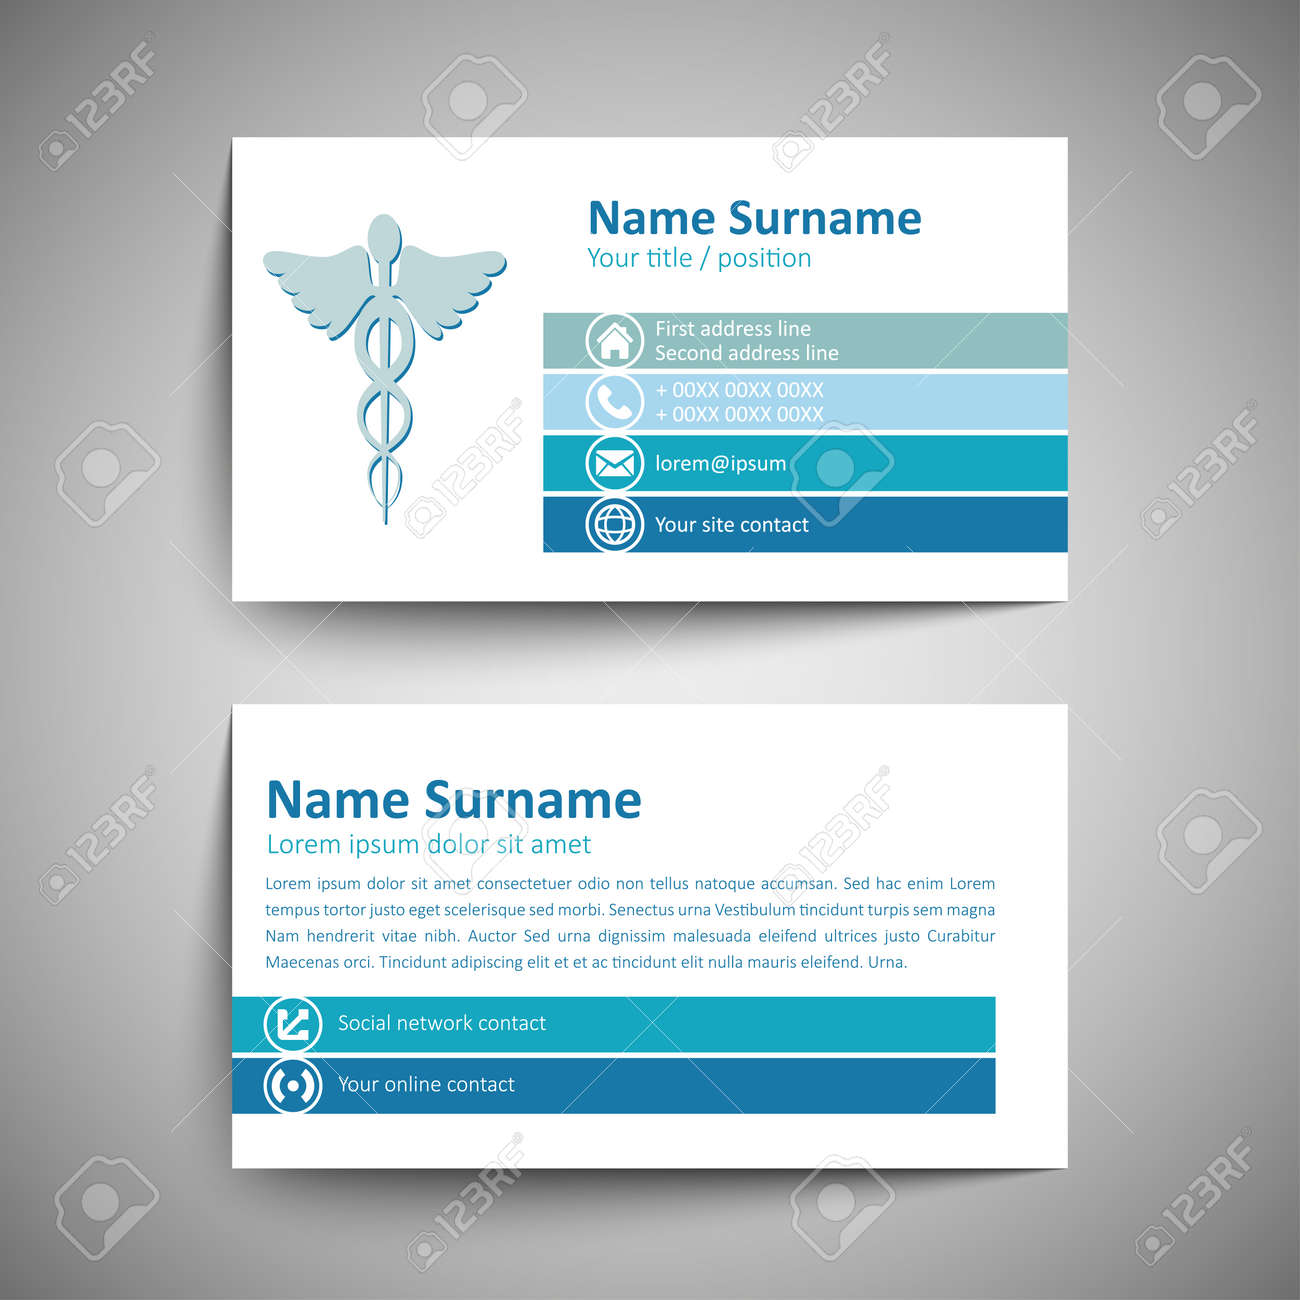 Modern Simple Business Card Template. Vector Format. Royalty Free ...